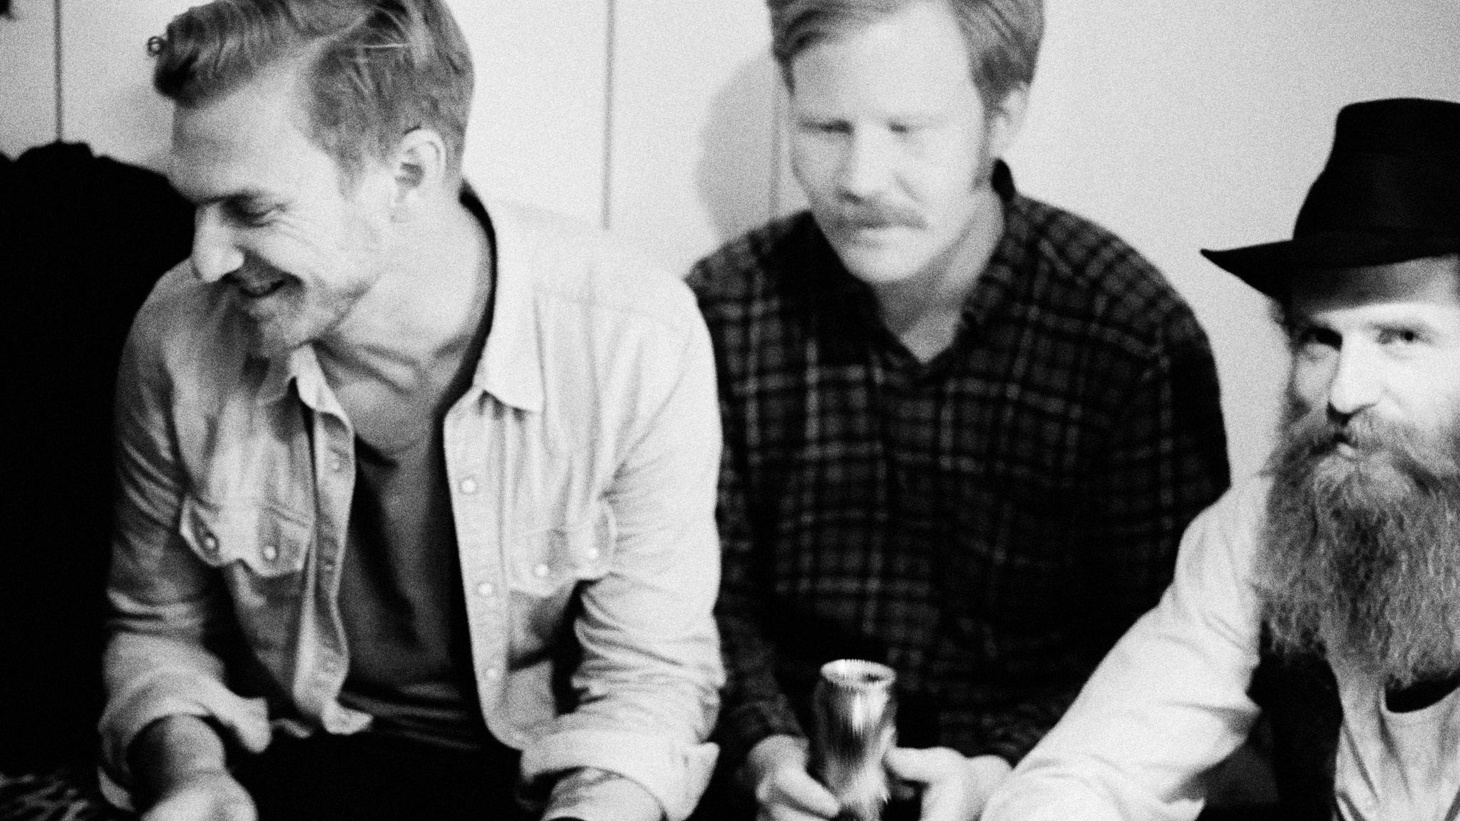 Members of Swedish bands Miike Snow and Dungen join together for a new project called Amason.